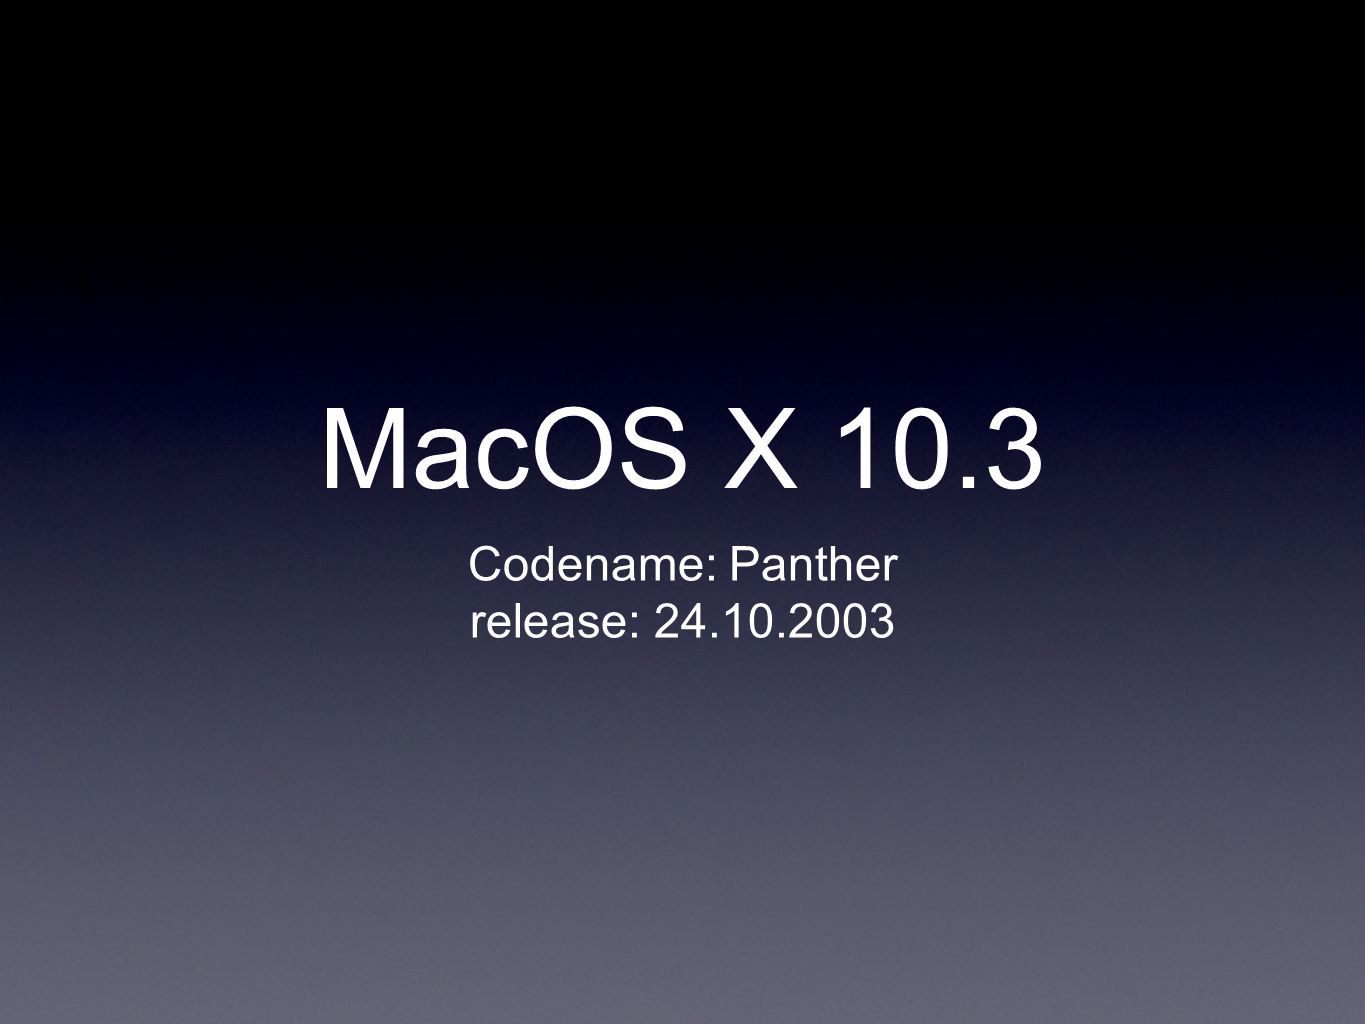 MacOS X 10.3 Codename: Panther release: 24.10.2003